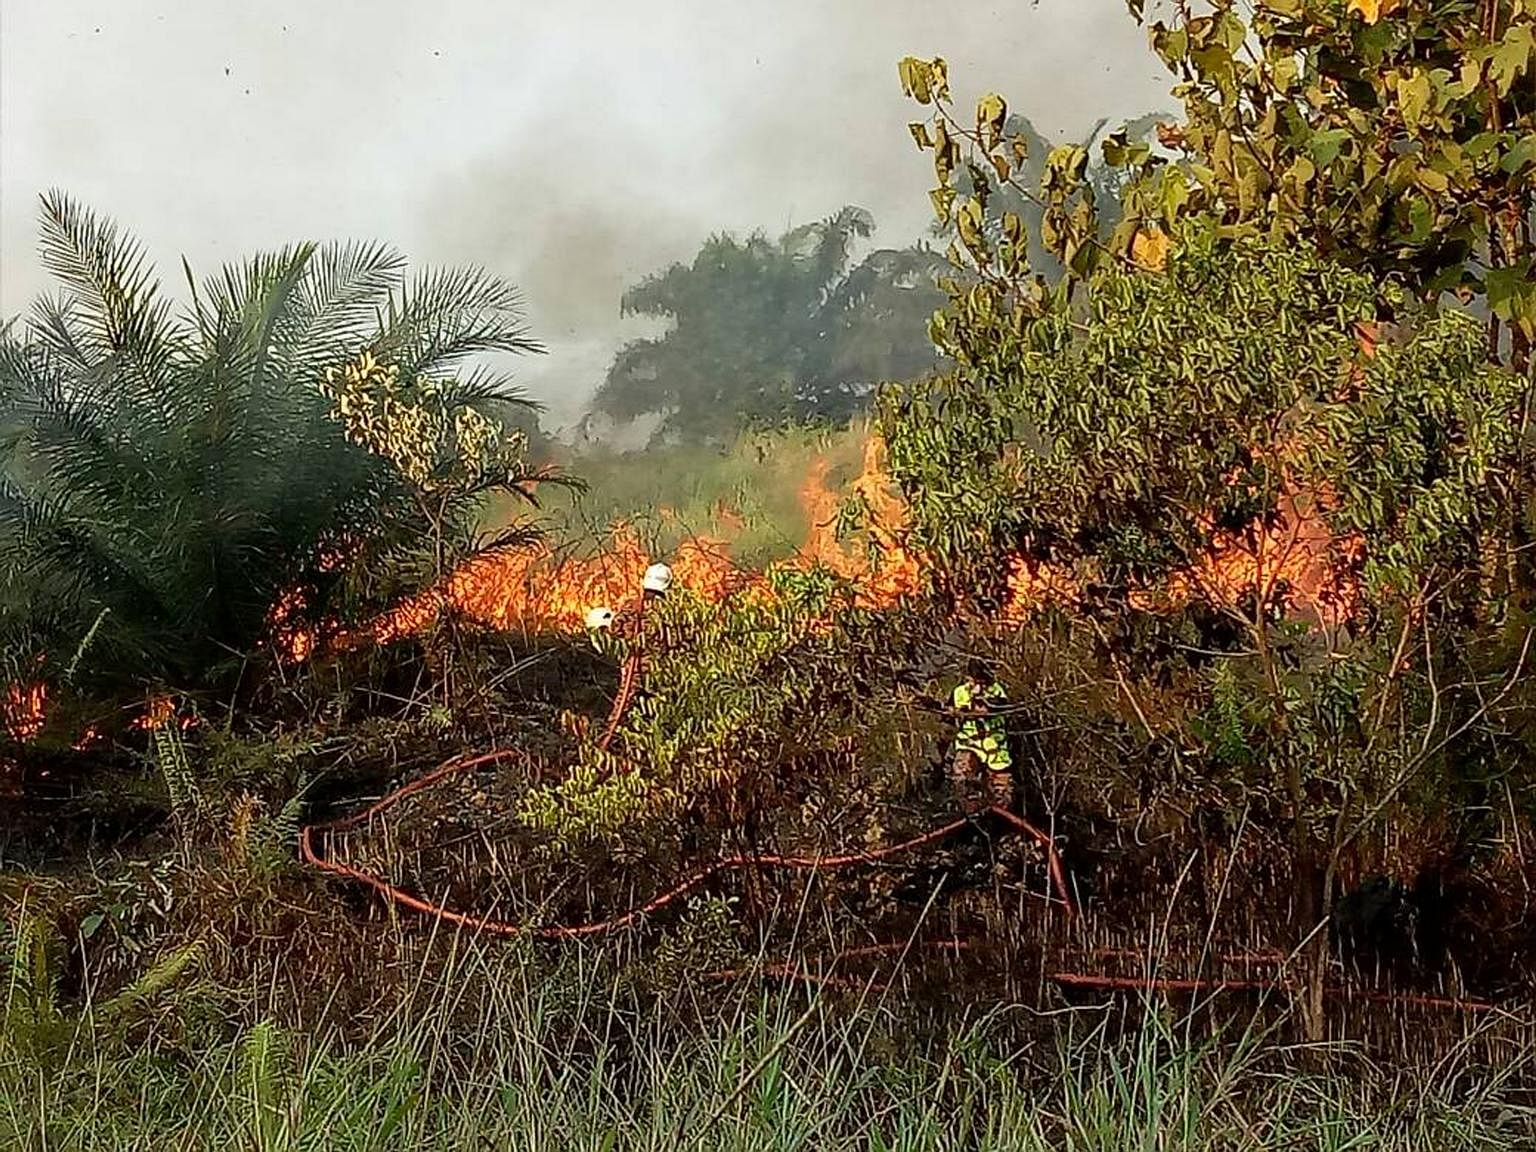 Parts Of Malaysia Hit By Unhealthy Levels Of Haze Se Asia News Top Stories The Straits Times